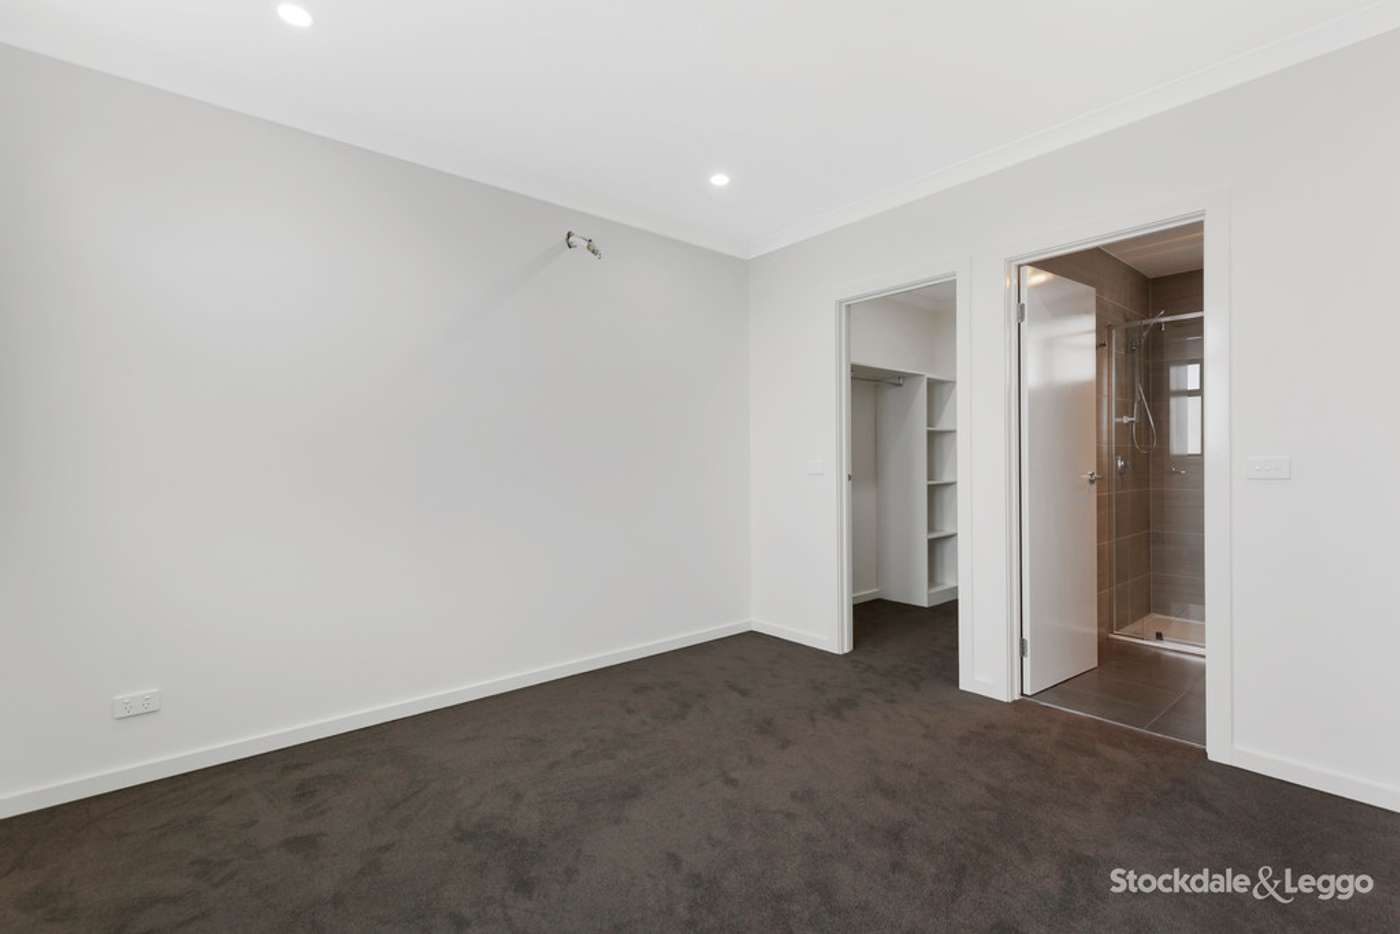 Fifth view of Homely townhouse listing, 3/9 Prospect Street, Glenroy VIC 3046